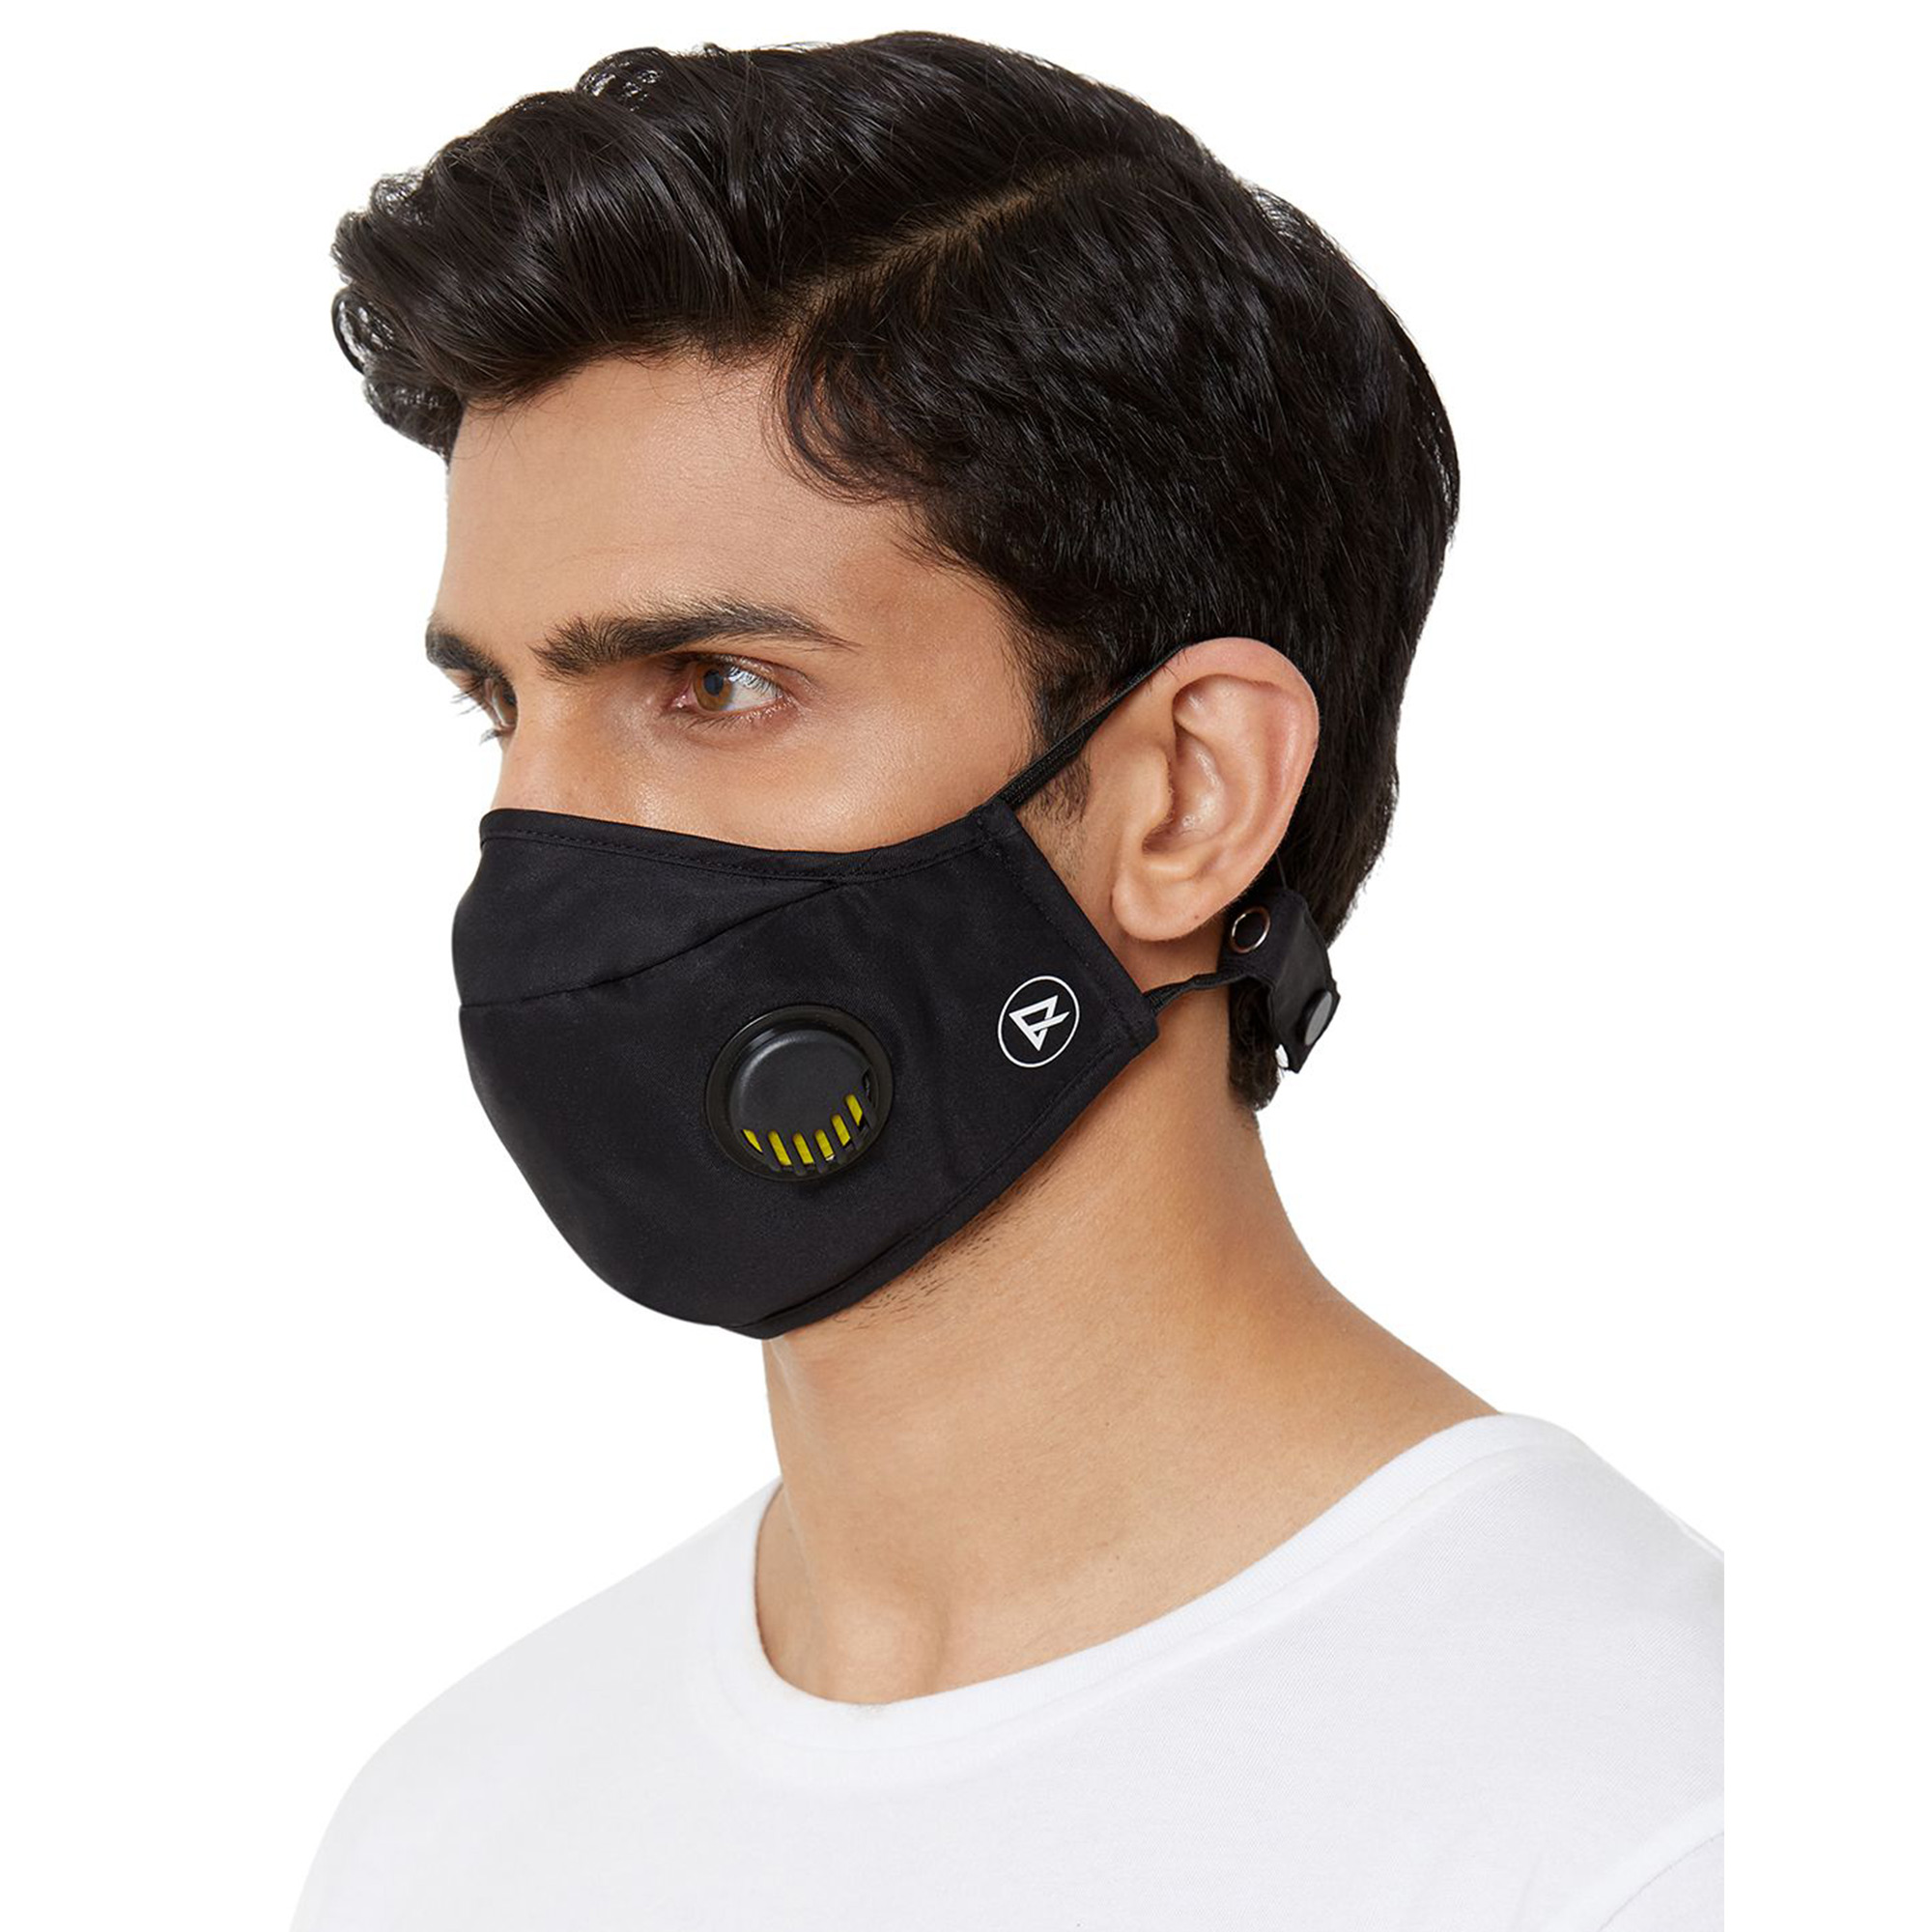 Zero Risque - In-built Antivirus and Antibacterial Treated Face Mask with Respiratory Valve, Headband Adjuster (Pack of 2)